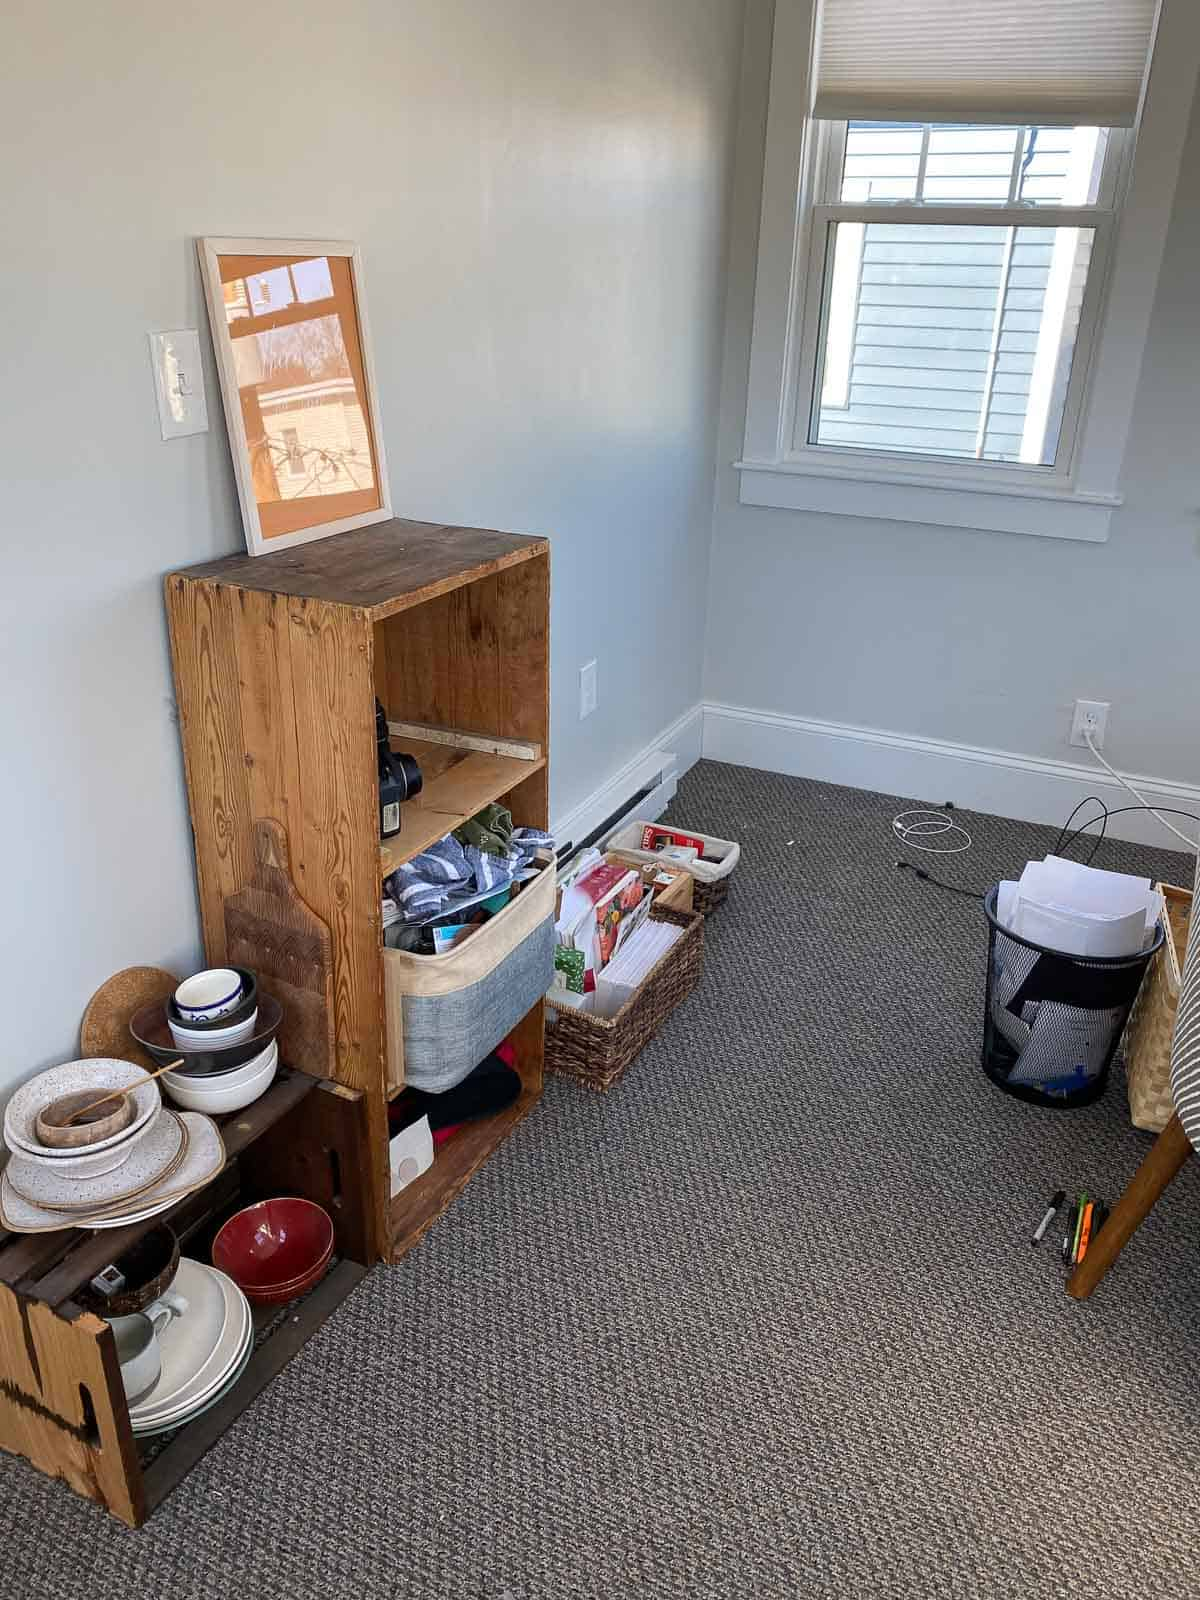 kara lydon second trimester pregnancy reorganize office room nesting project cleaning before photo